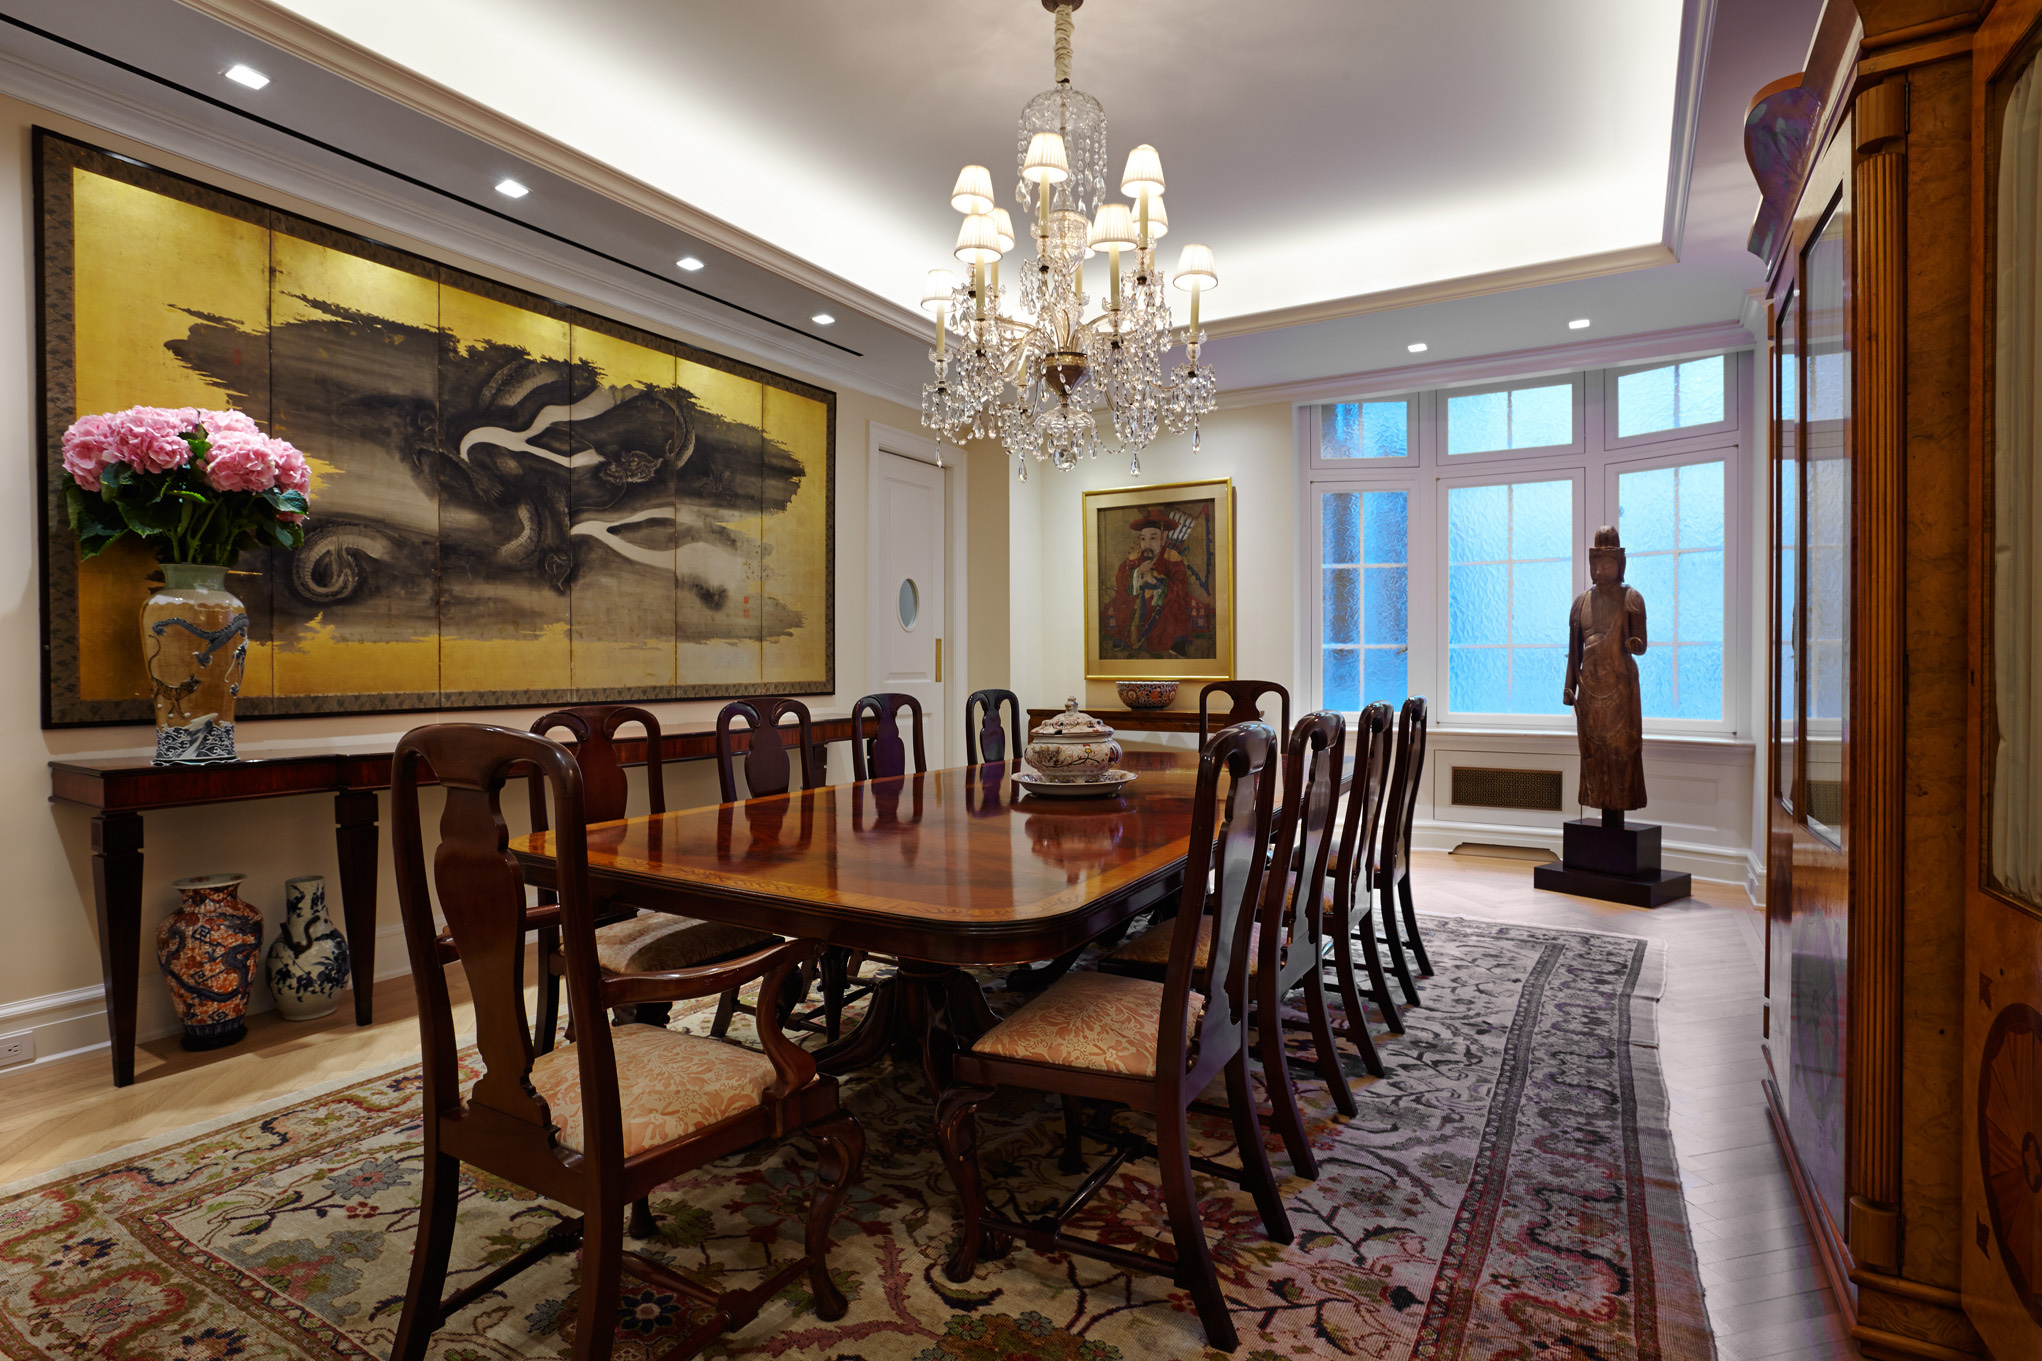 Fifth Avenue Dining Room